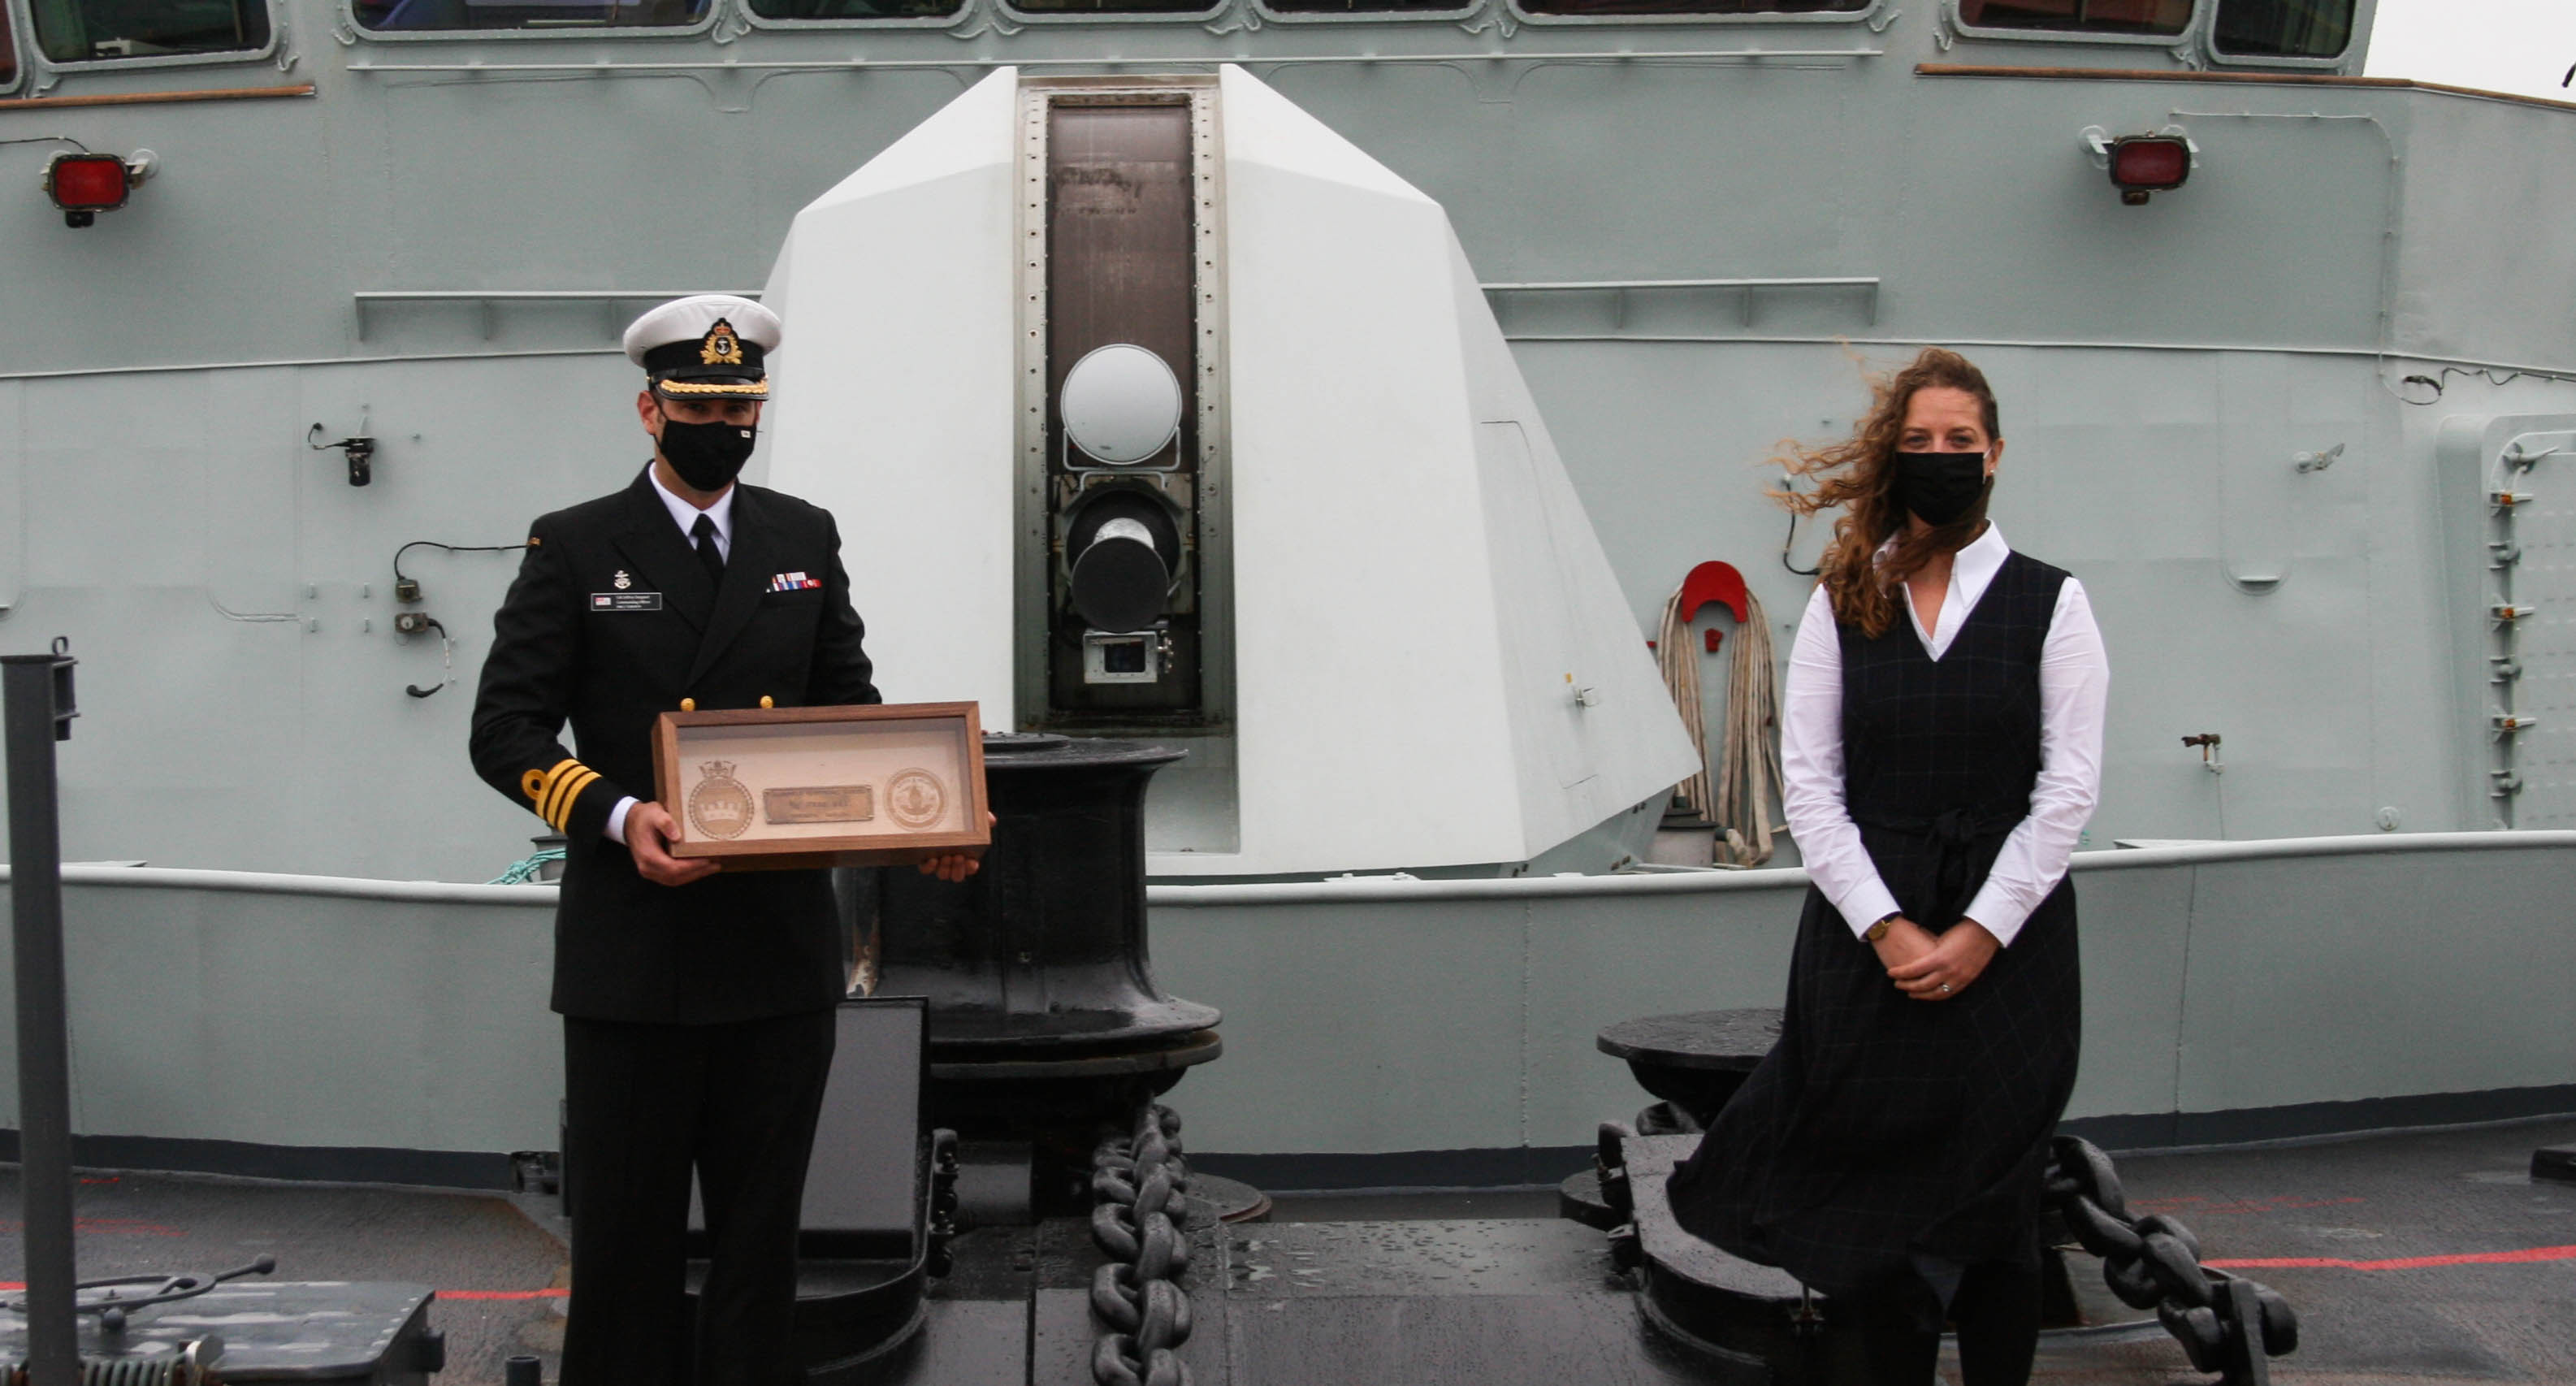 Cdr Jeff Dargavel, left, Commanding Officer of HMCS Toronto, and Camilla Moore, United Kingdom's Receiver of Wreck, on board HMCS Toronto for the presentation of the brass fuse box plate.